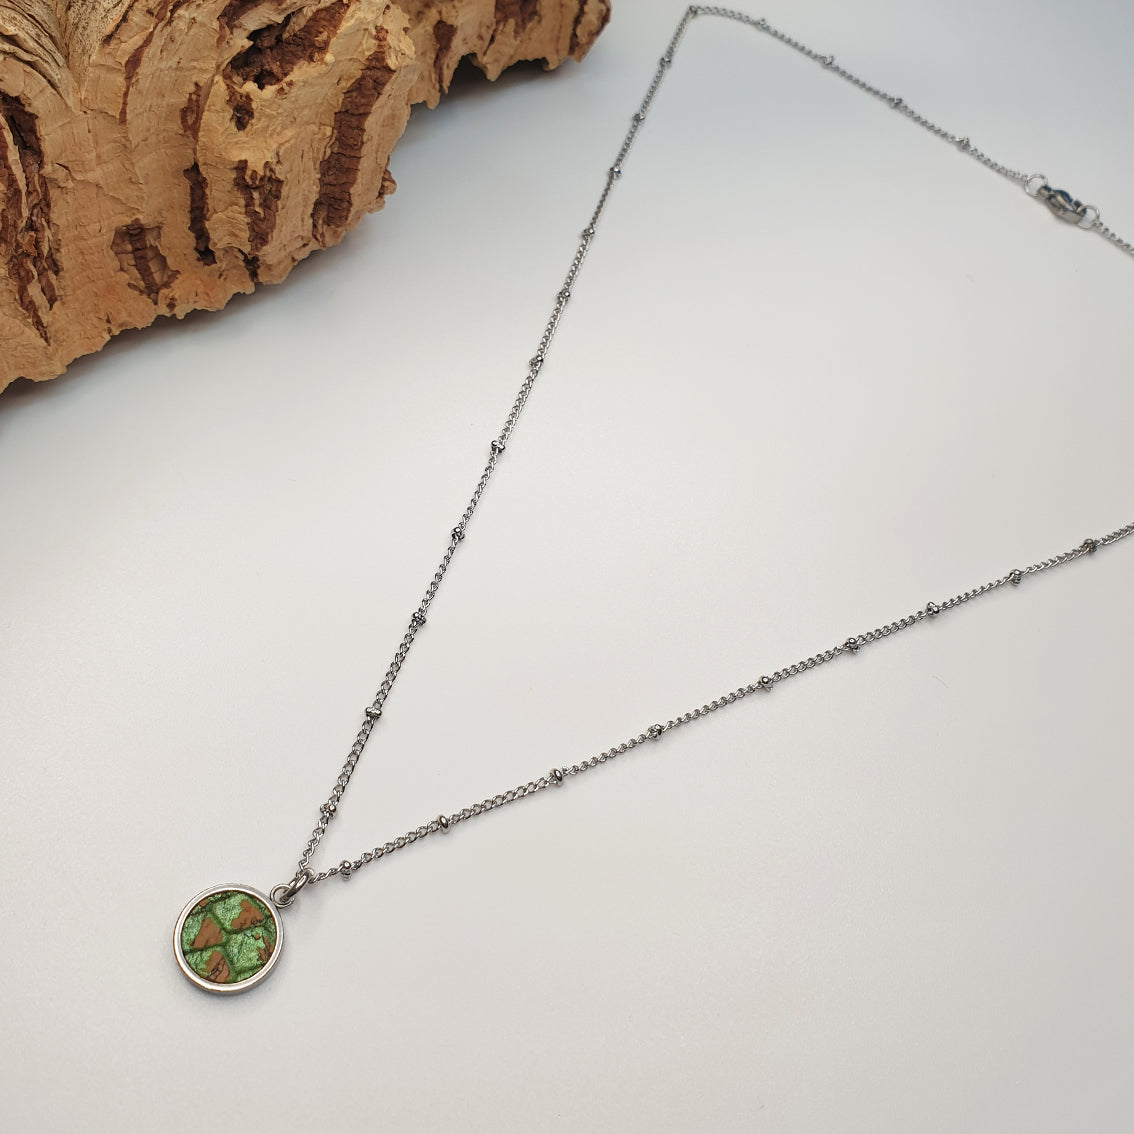 Fabrikk 1 Small Planet Necklace | Green Python Skin | Vegan 'Leather'